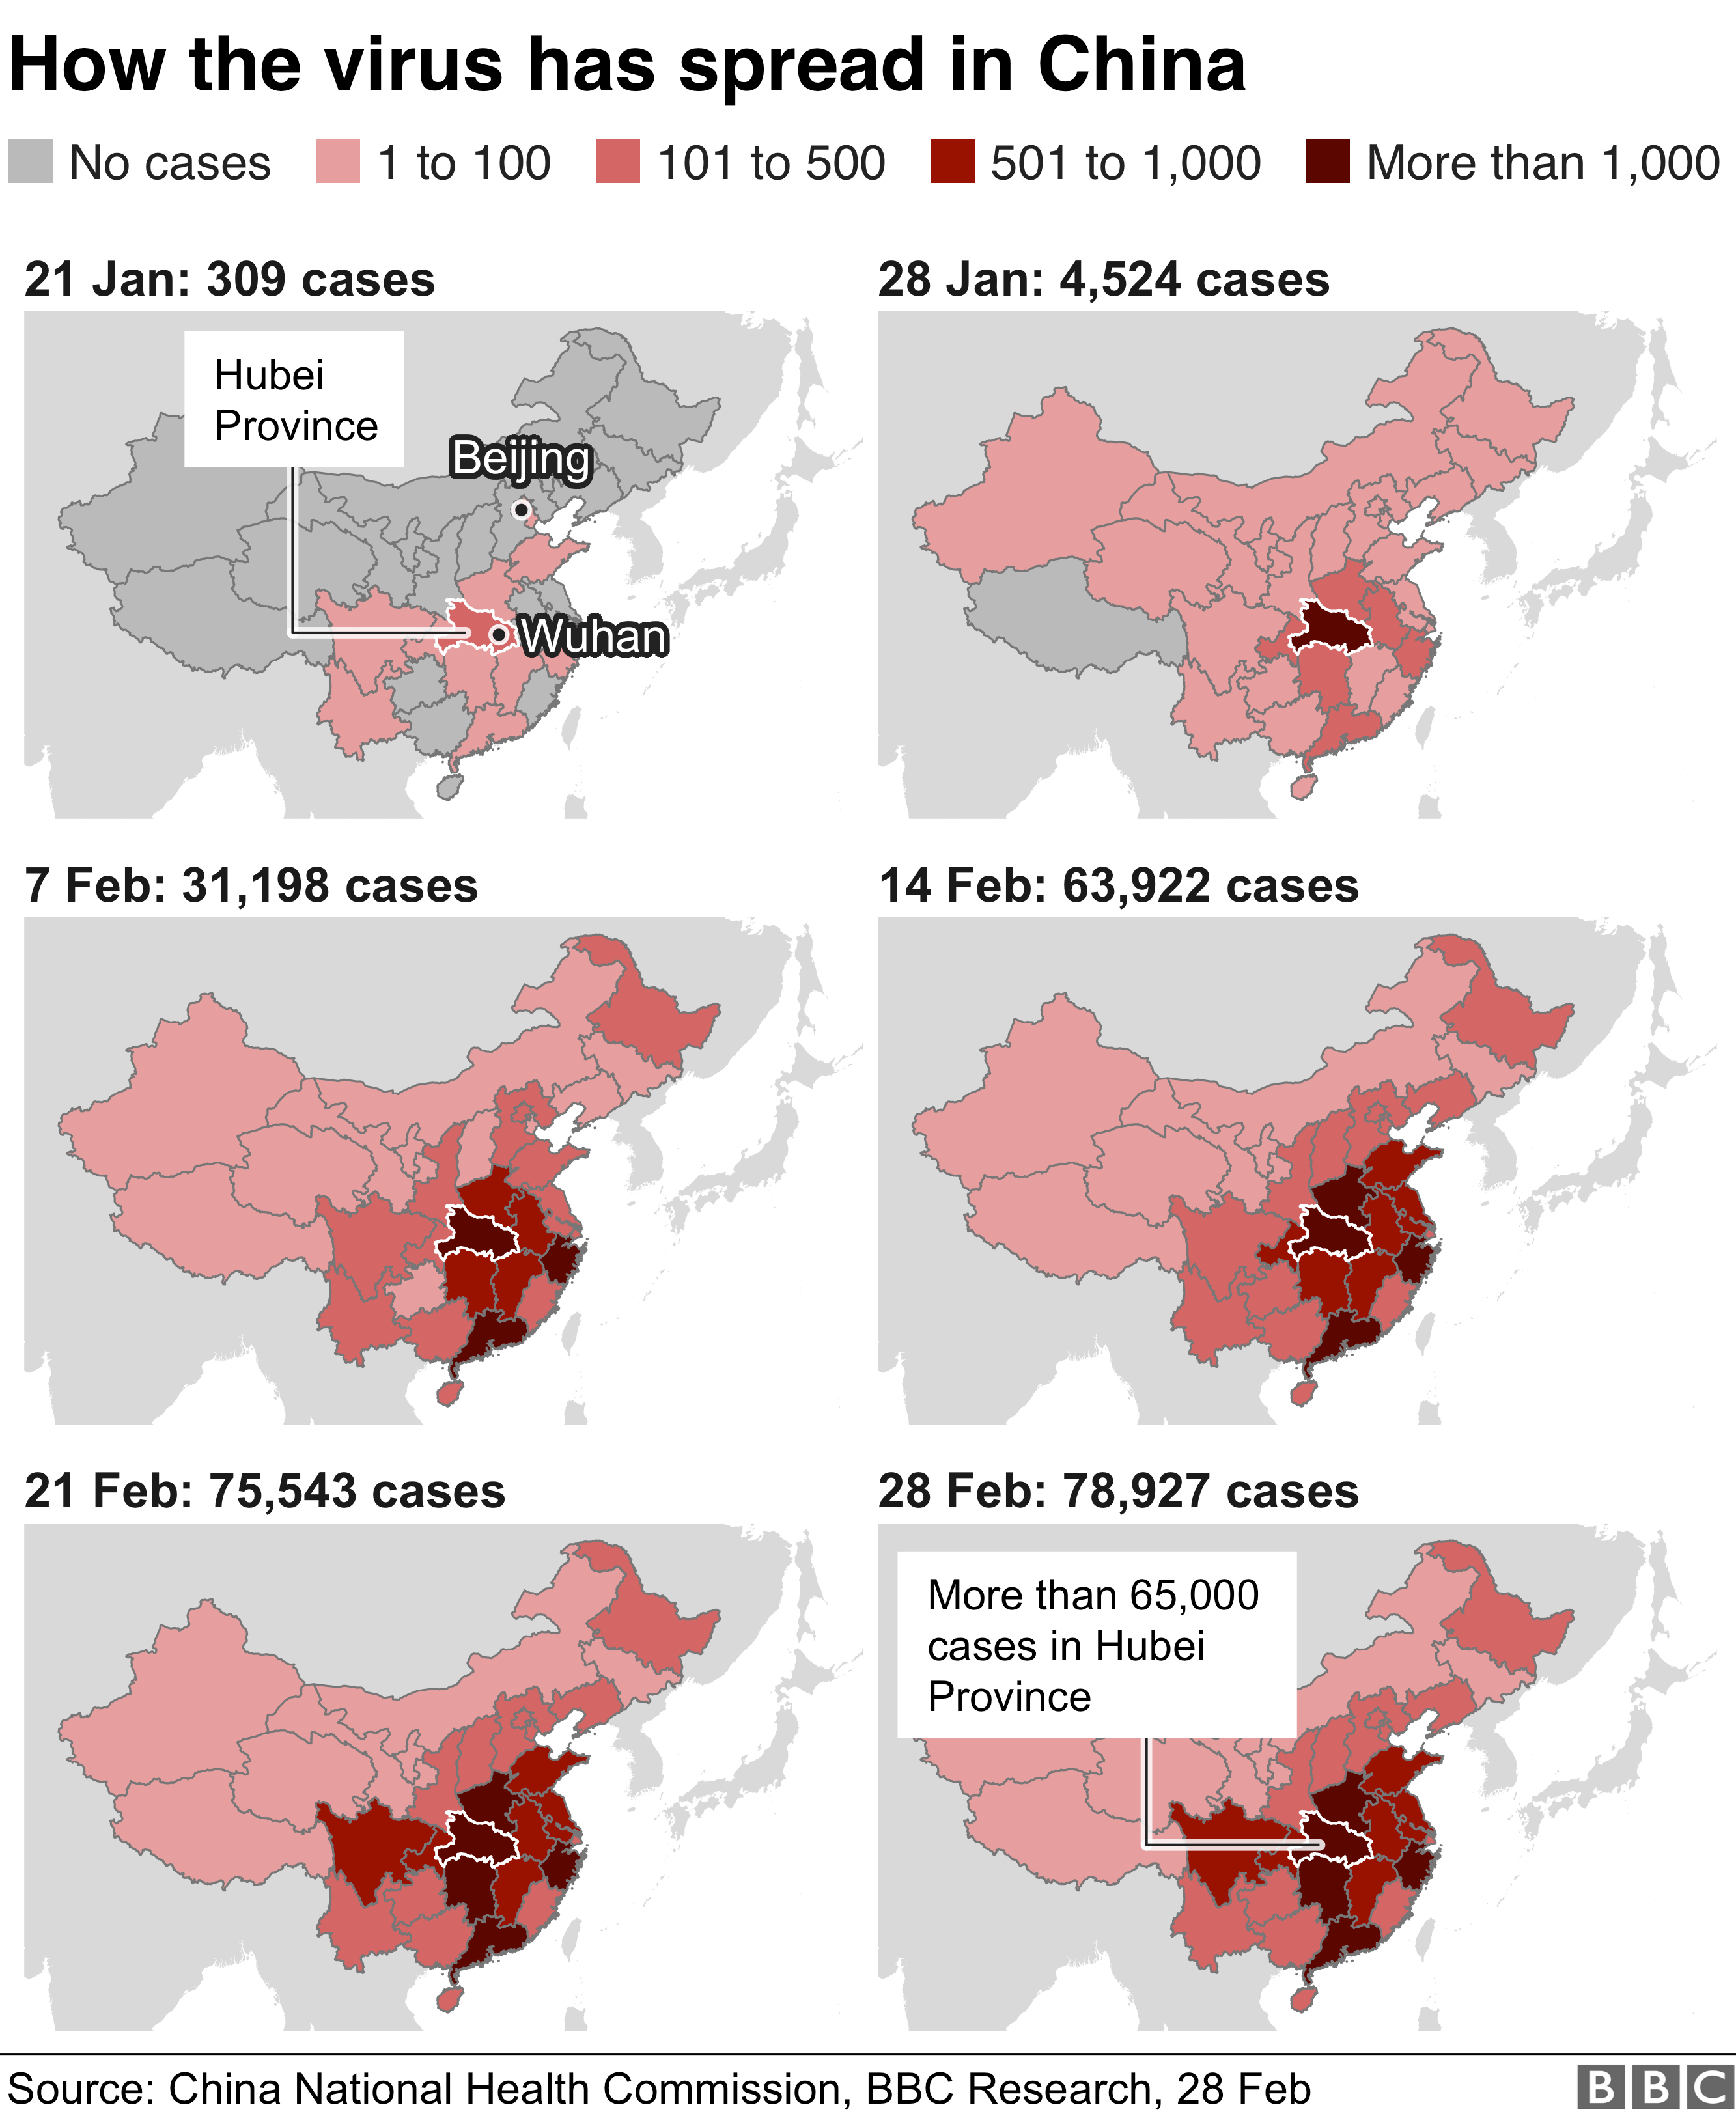 Series of maps showing how the coronavirus has spread in China